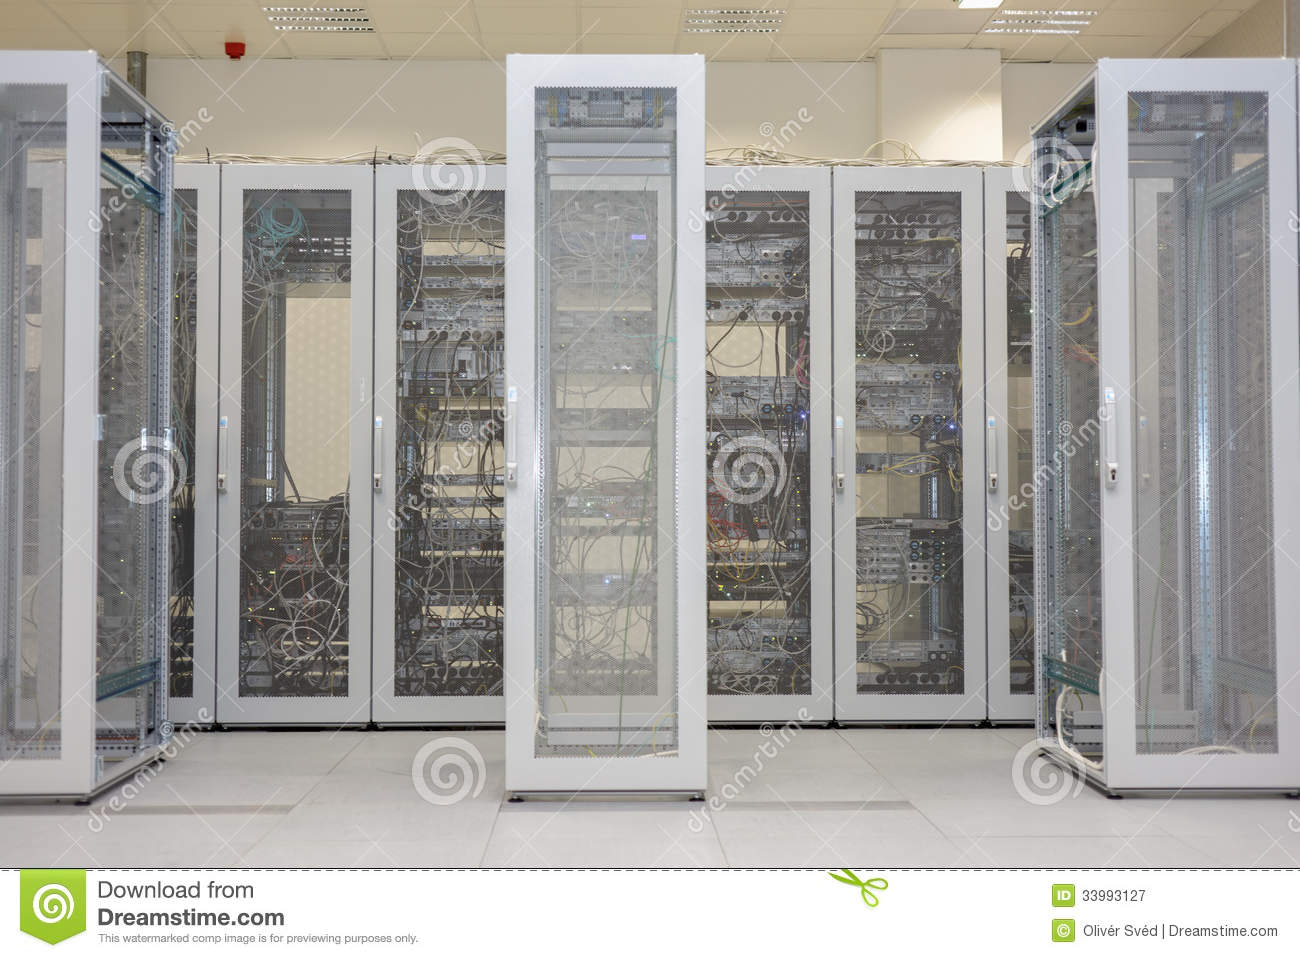 how to clean a server room